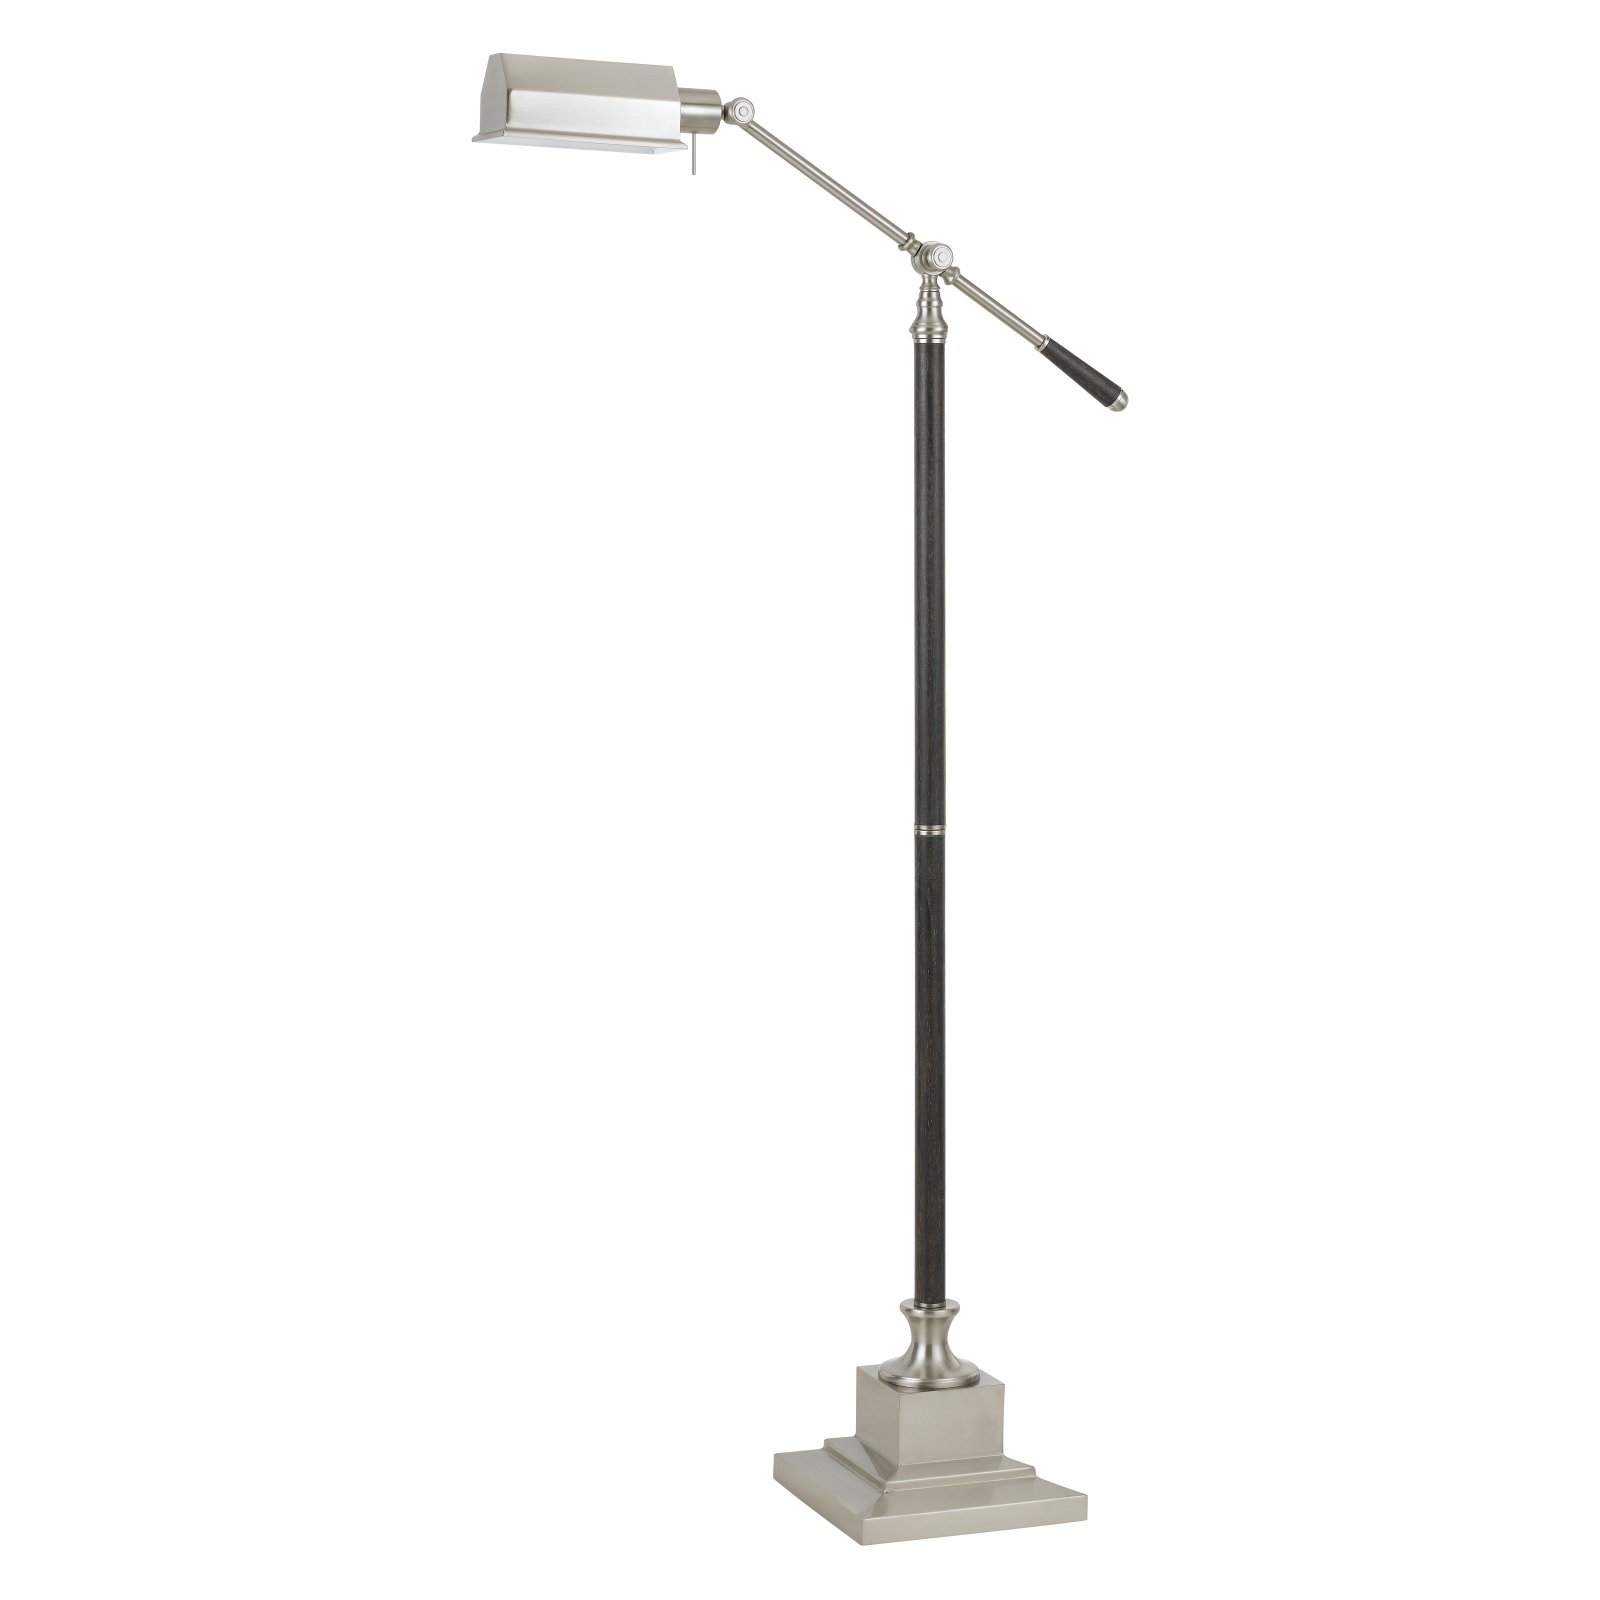 Cal Lighting Angelton BO-2687 Floor Lamp by CAL Lighting